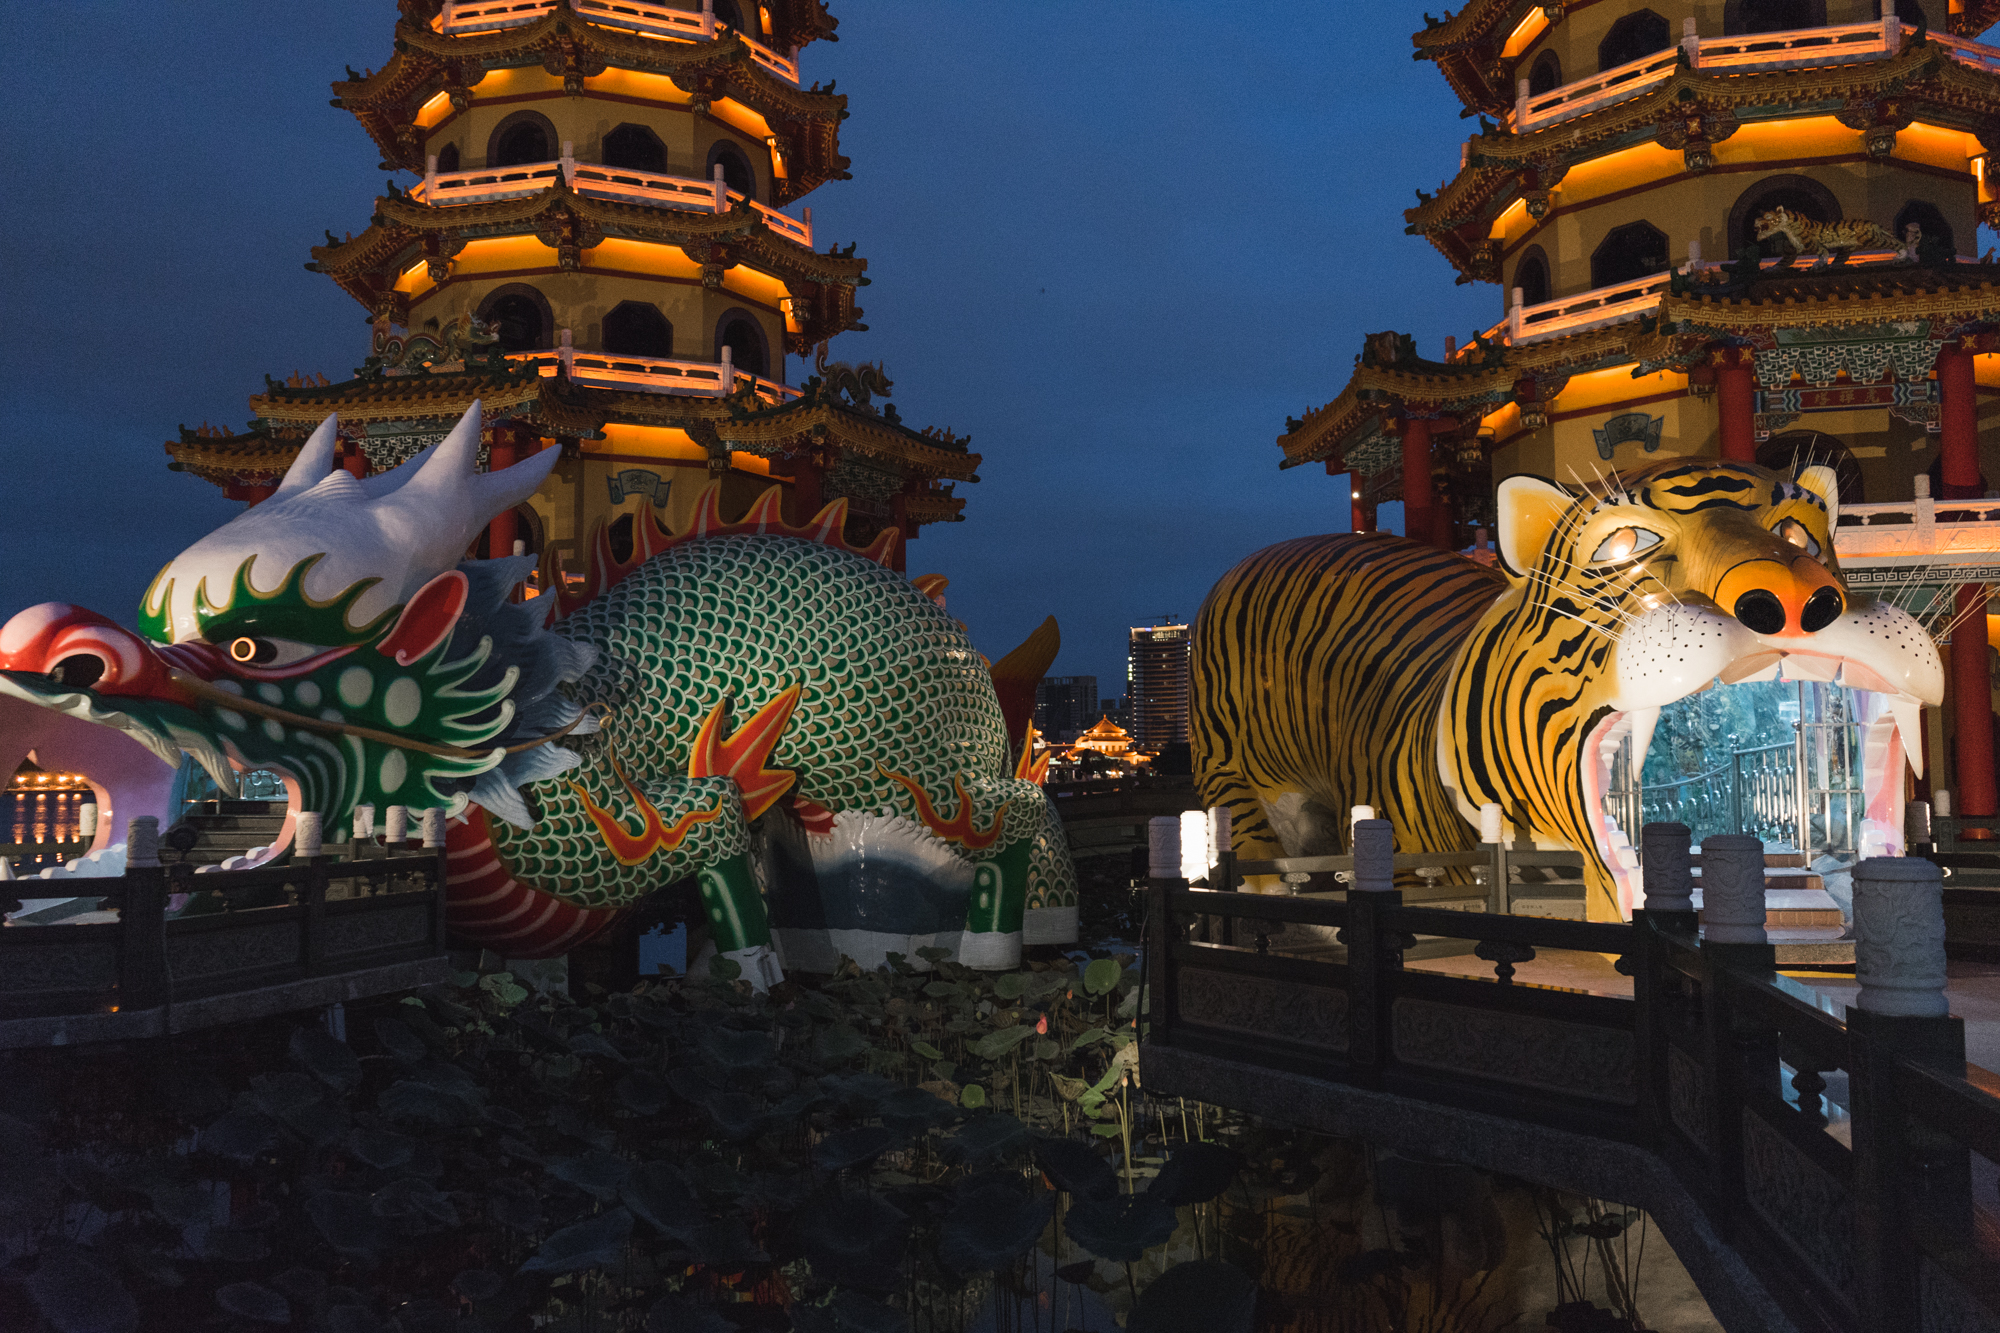 Dragon Tiger Pagodas at Lotus Pond in Kaohsiung